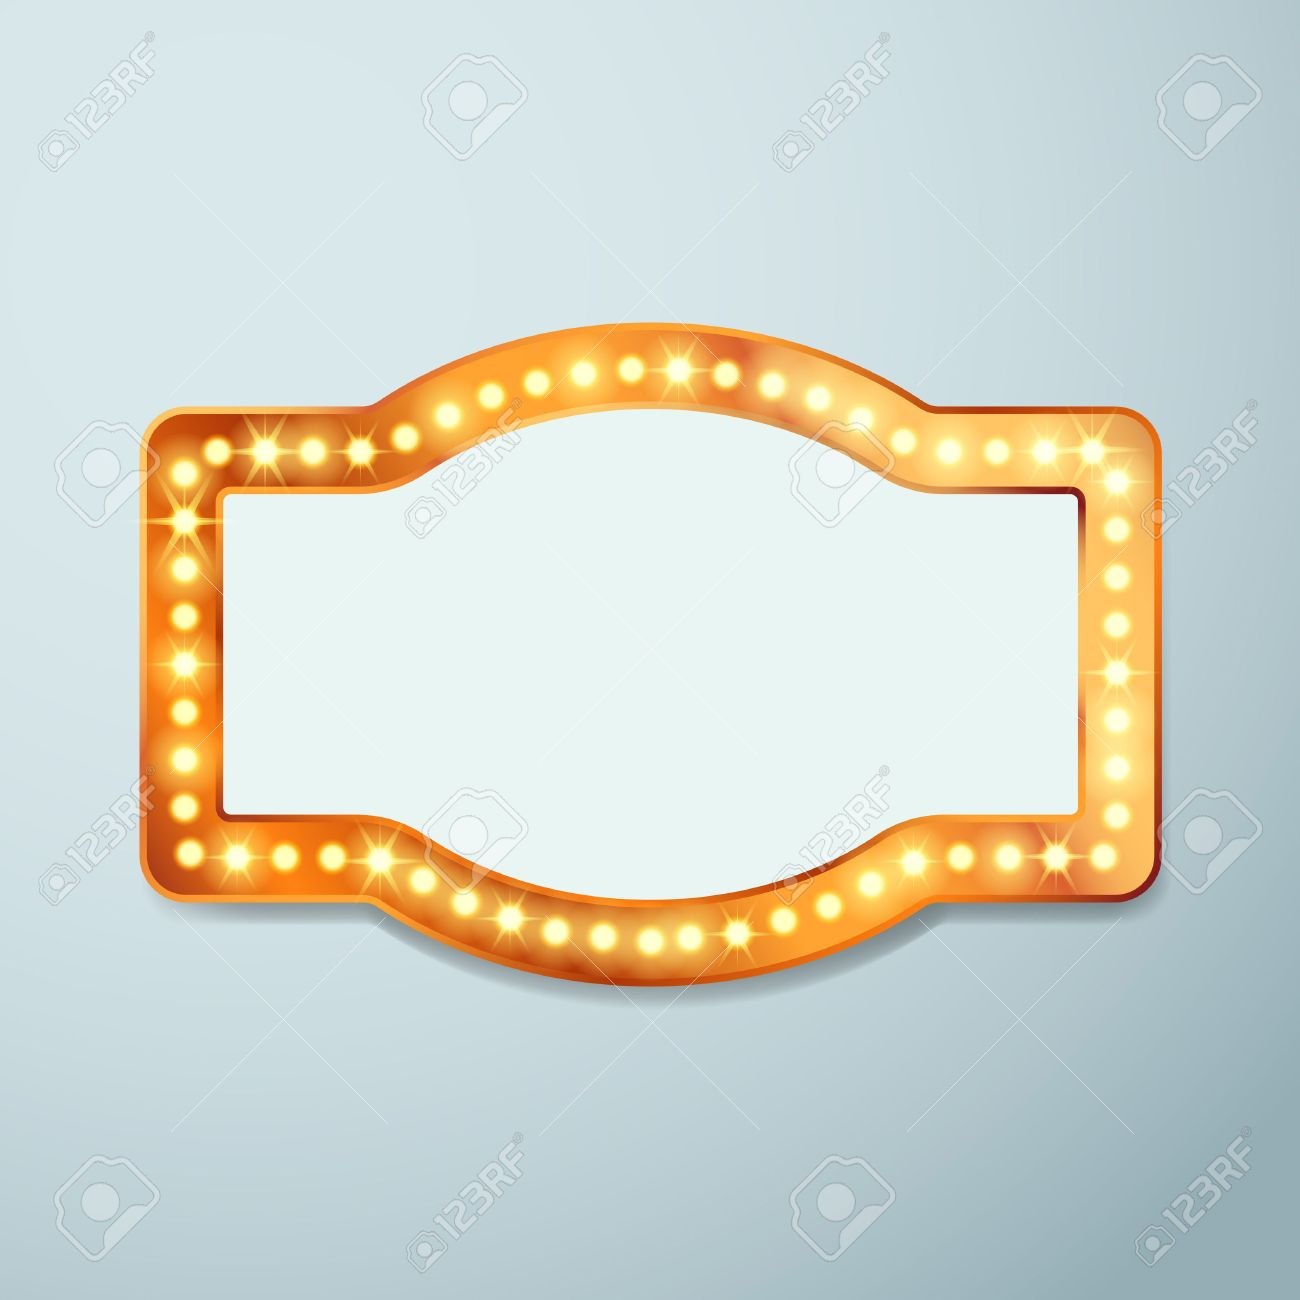 Retro Bulb Circus Cinema Light Sign Template - Vintage Old Frame ...